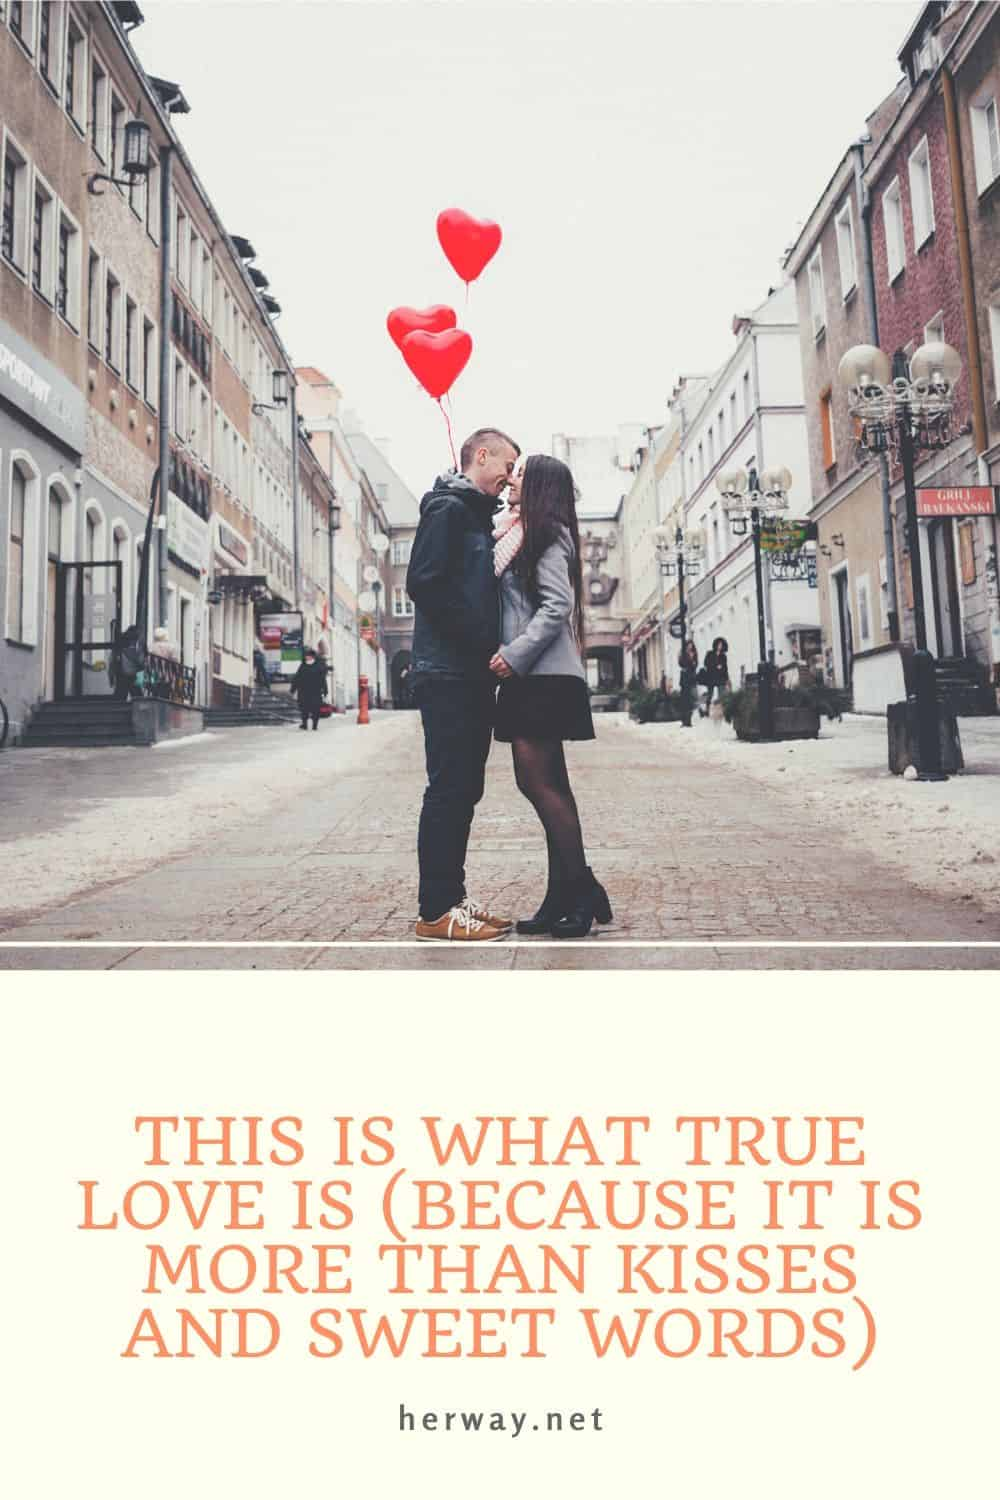 THIS IS WHAT TRUE LOVE IS (BECAUSE IT IS MORE THAN KISSES AND SWEET WORDS)